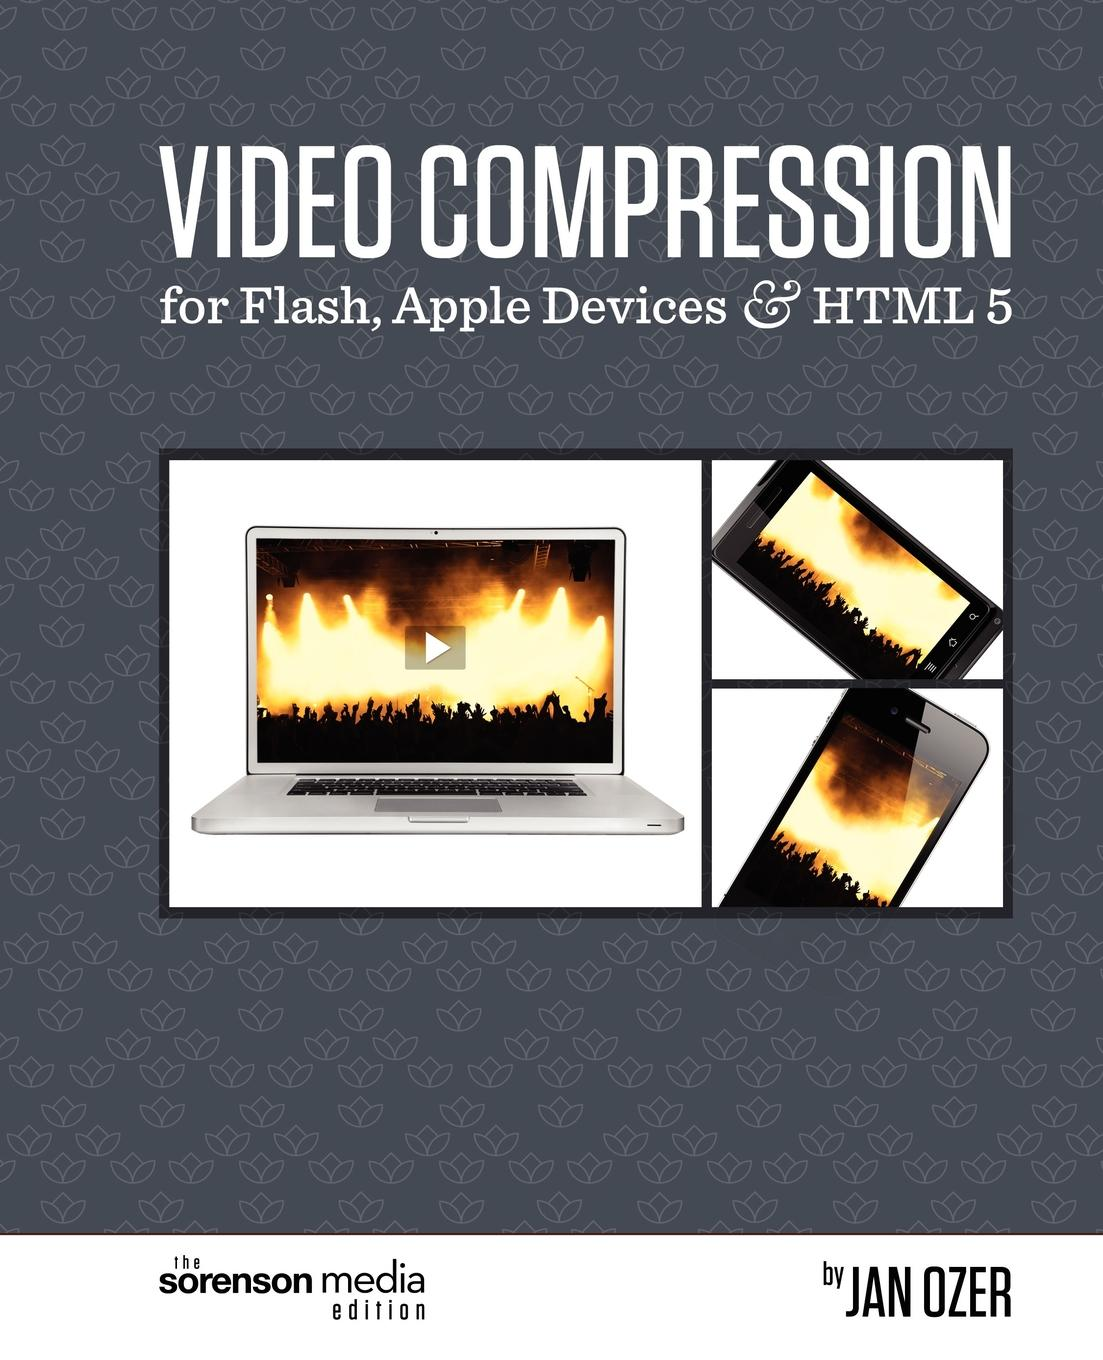 Jan Ozer Video Compression for Flash, Apple Devices and HTML5. The Sorenson Media Edition